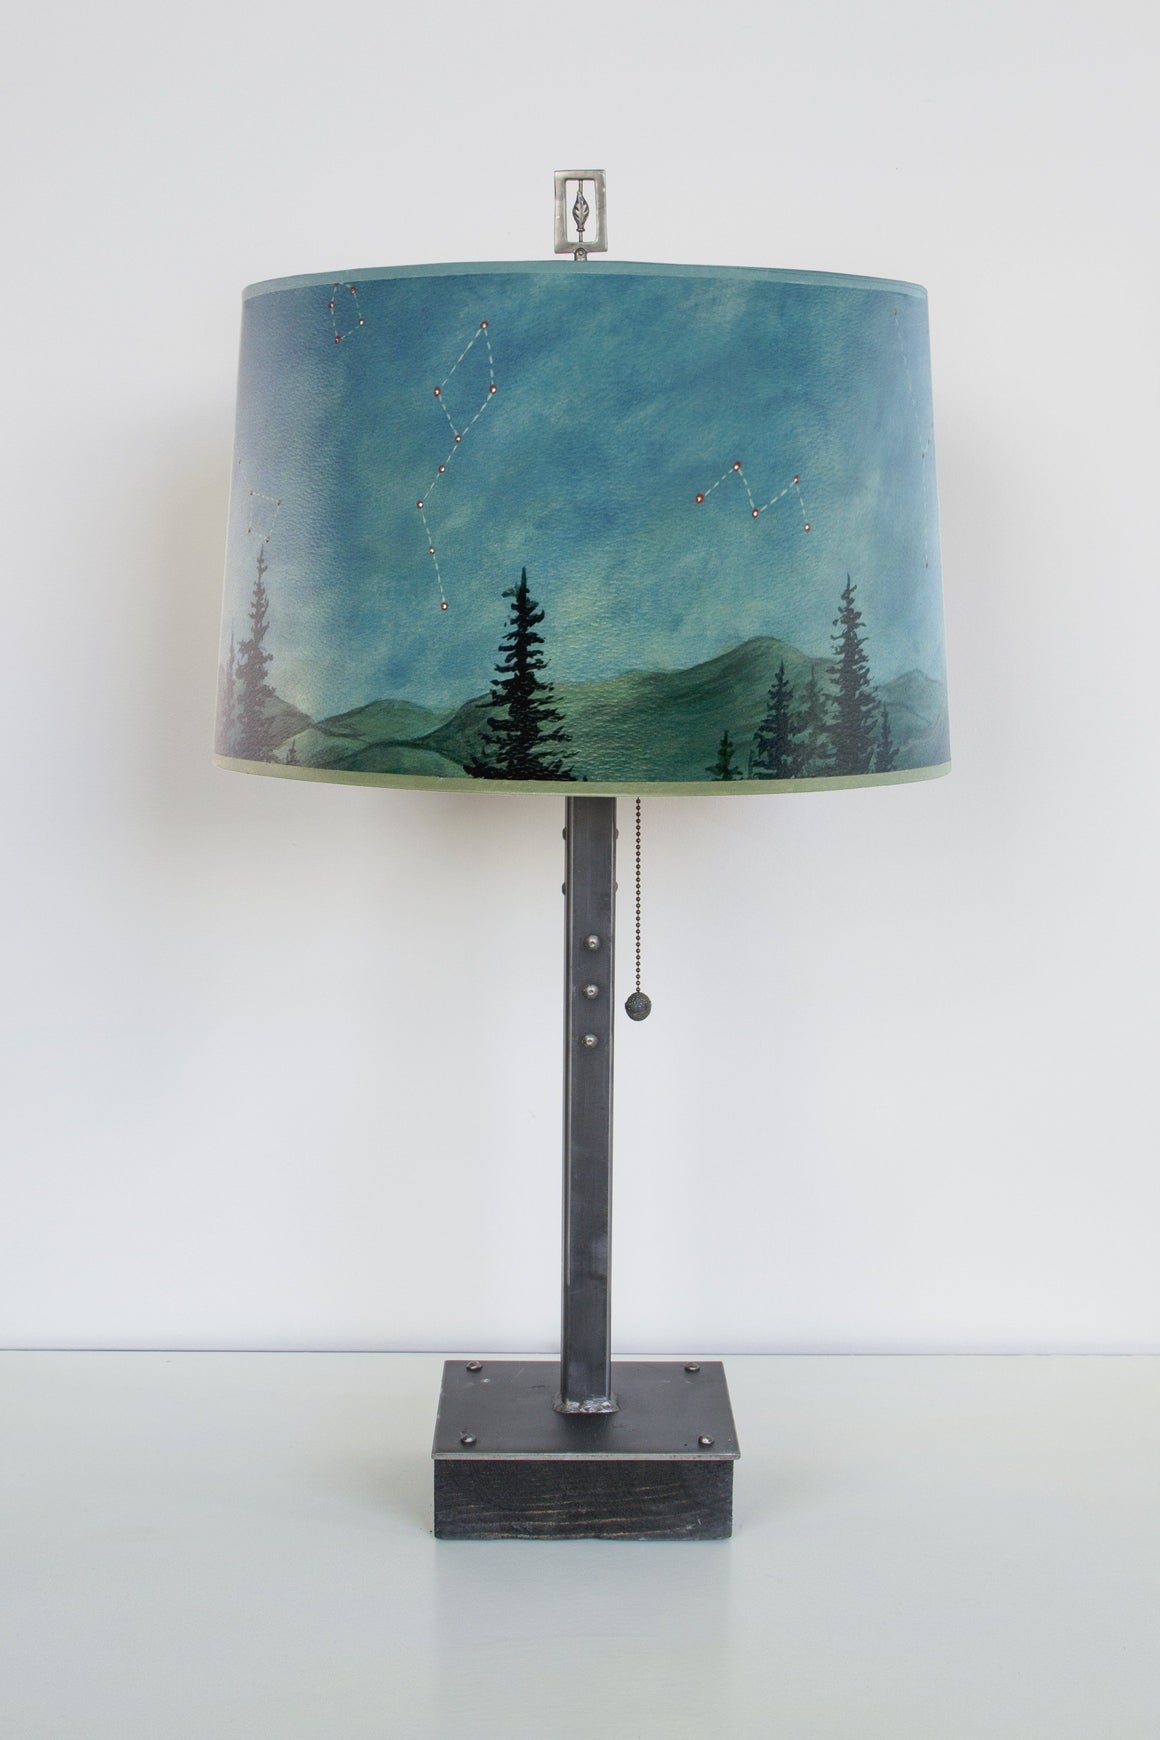 Steel Table Lamp on Wood with Large Drum Shade in Midnight